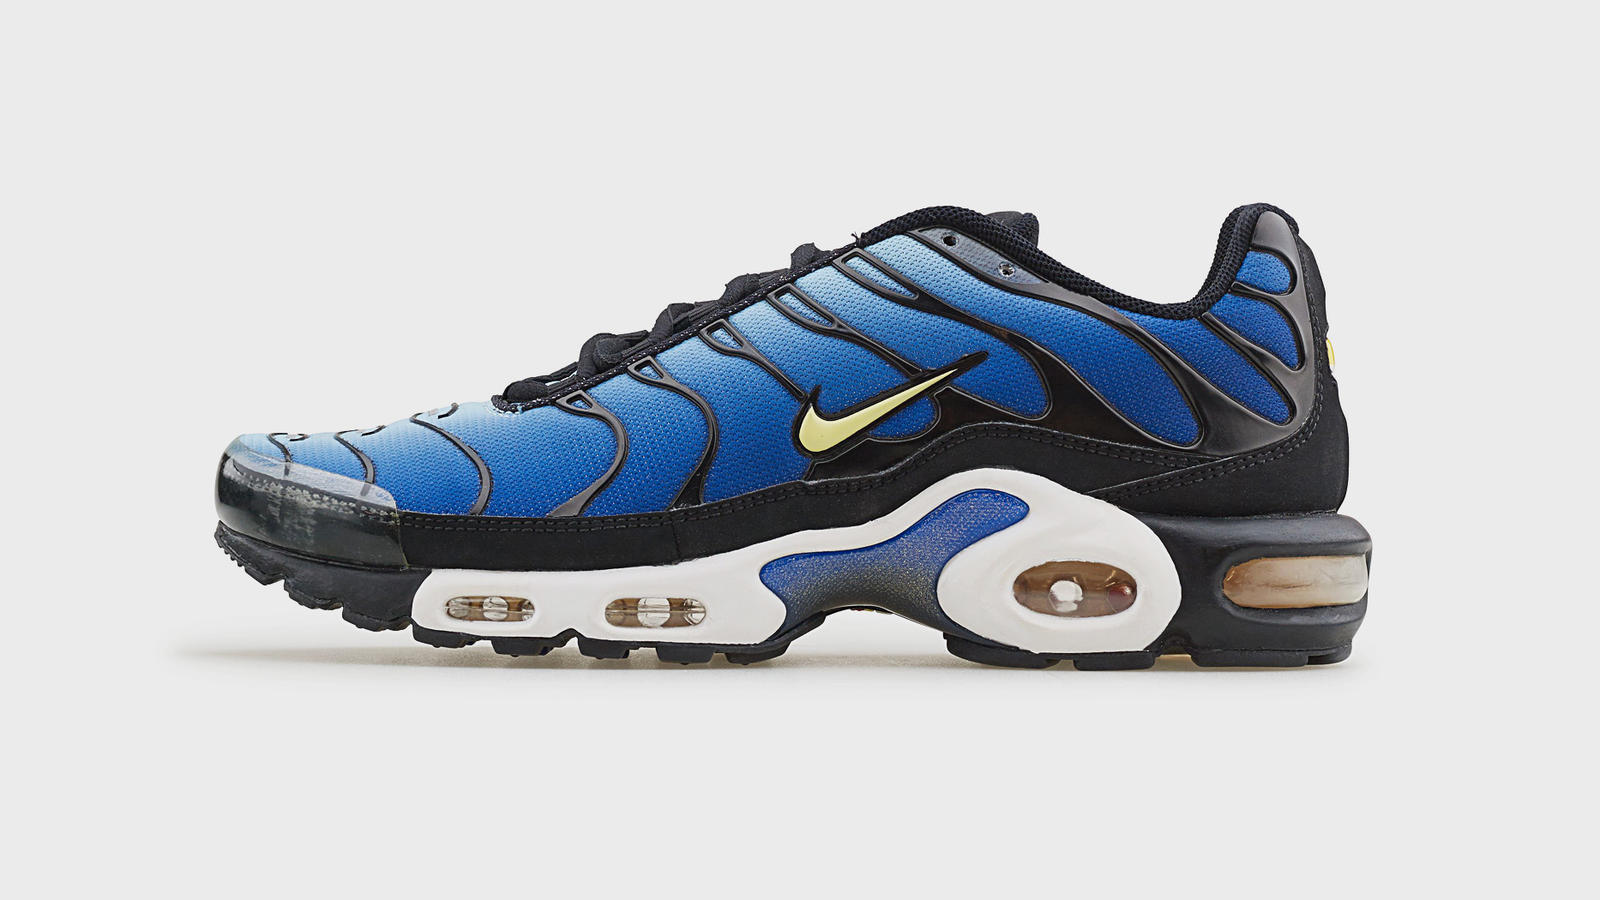 979ee66971 The Untold Story of the Nike Air Max Plus 26